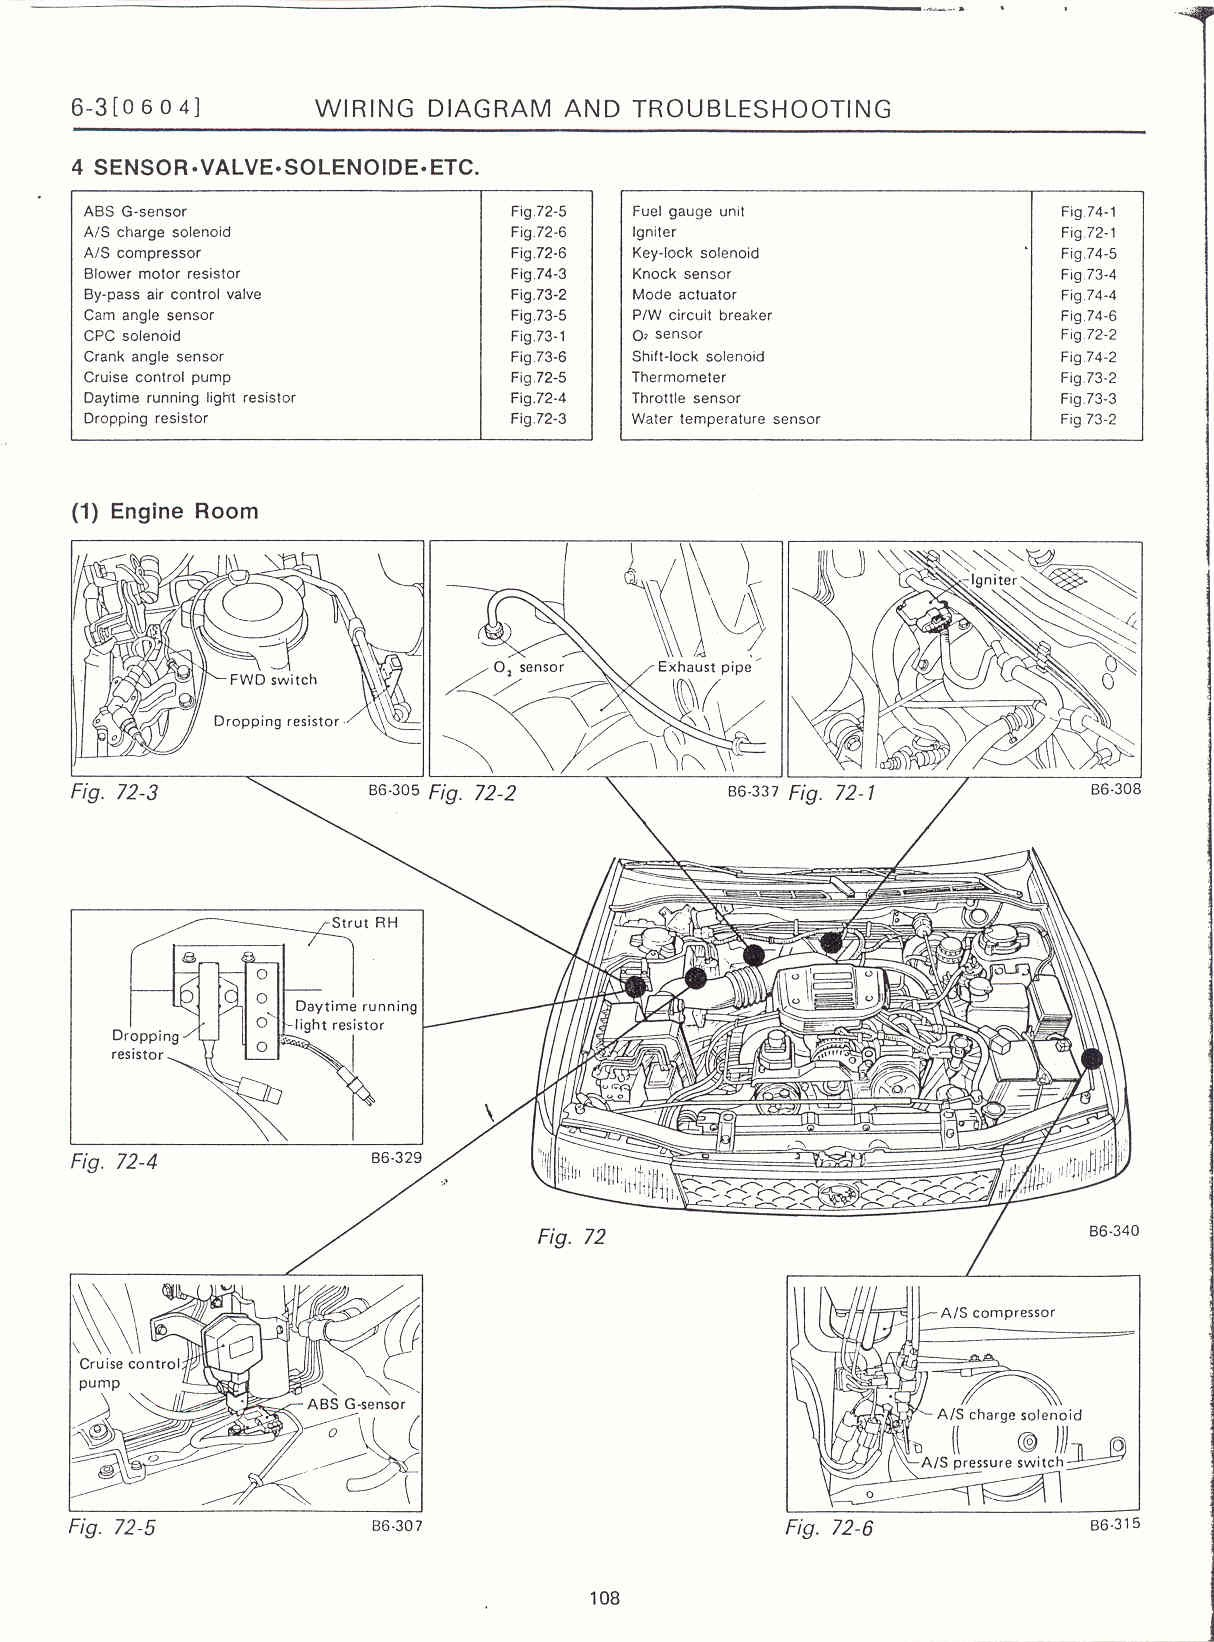 diagram 2002 subaru wrx exhaust diagram full version hd. Black Bedroom Furniture Sets. Home Design Ideas